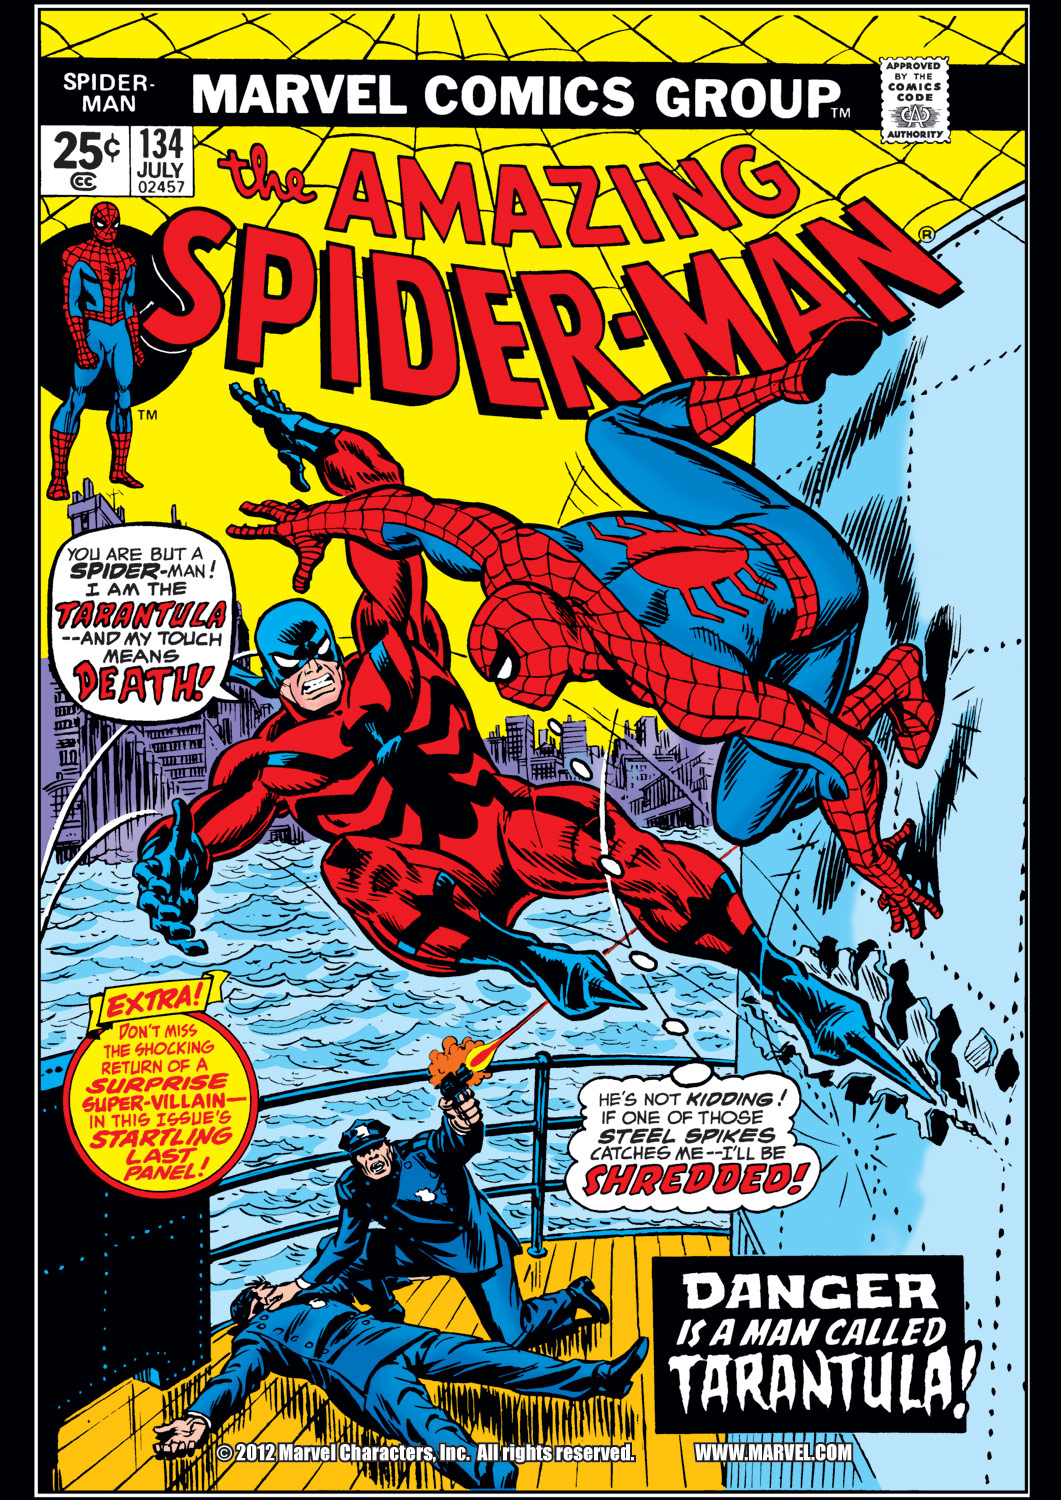 The Amazing Spider-Man (1963) #134